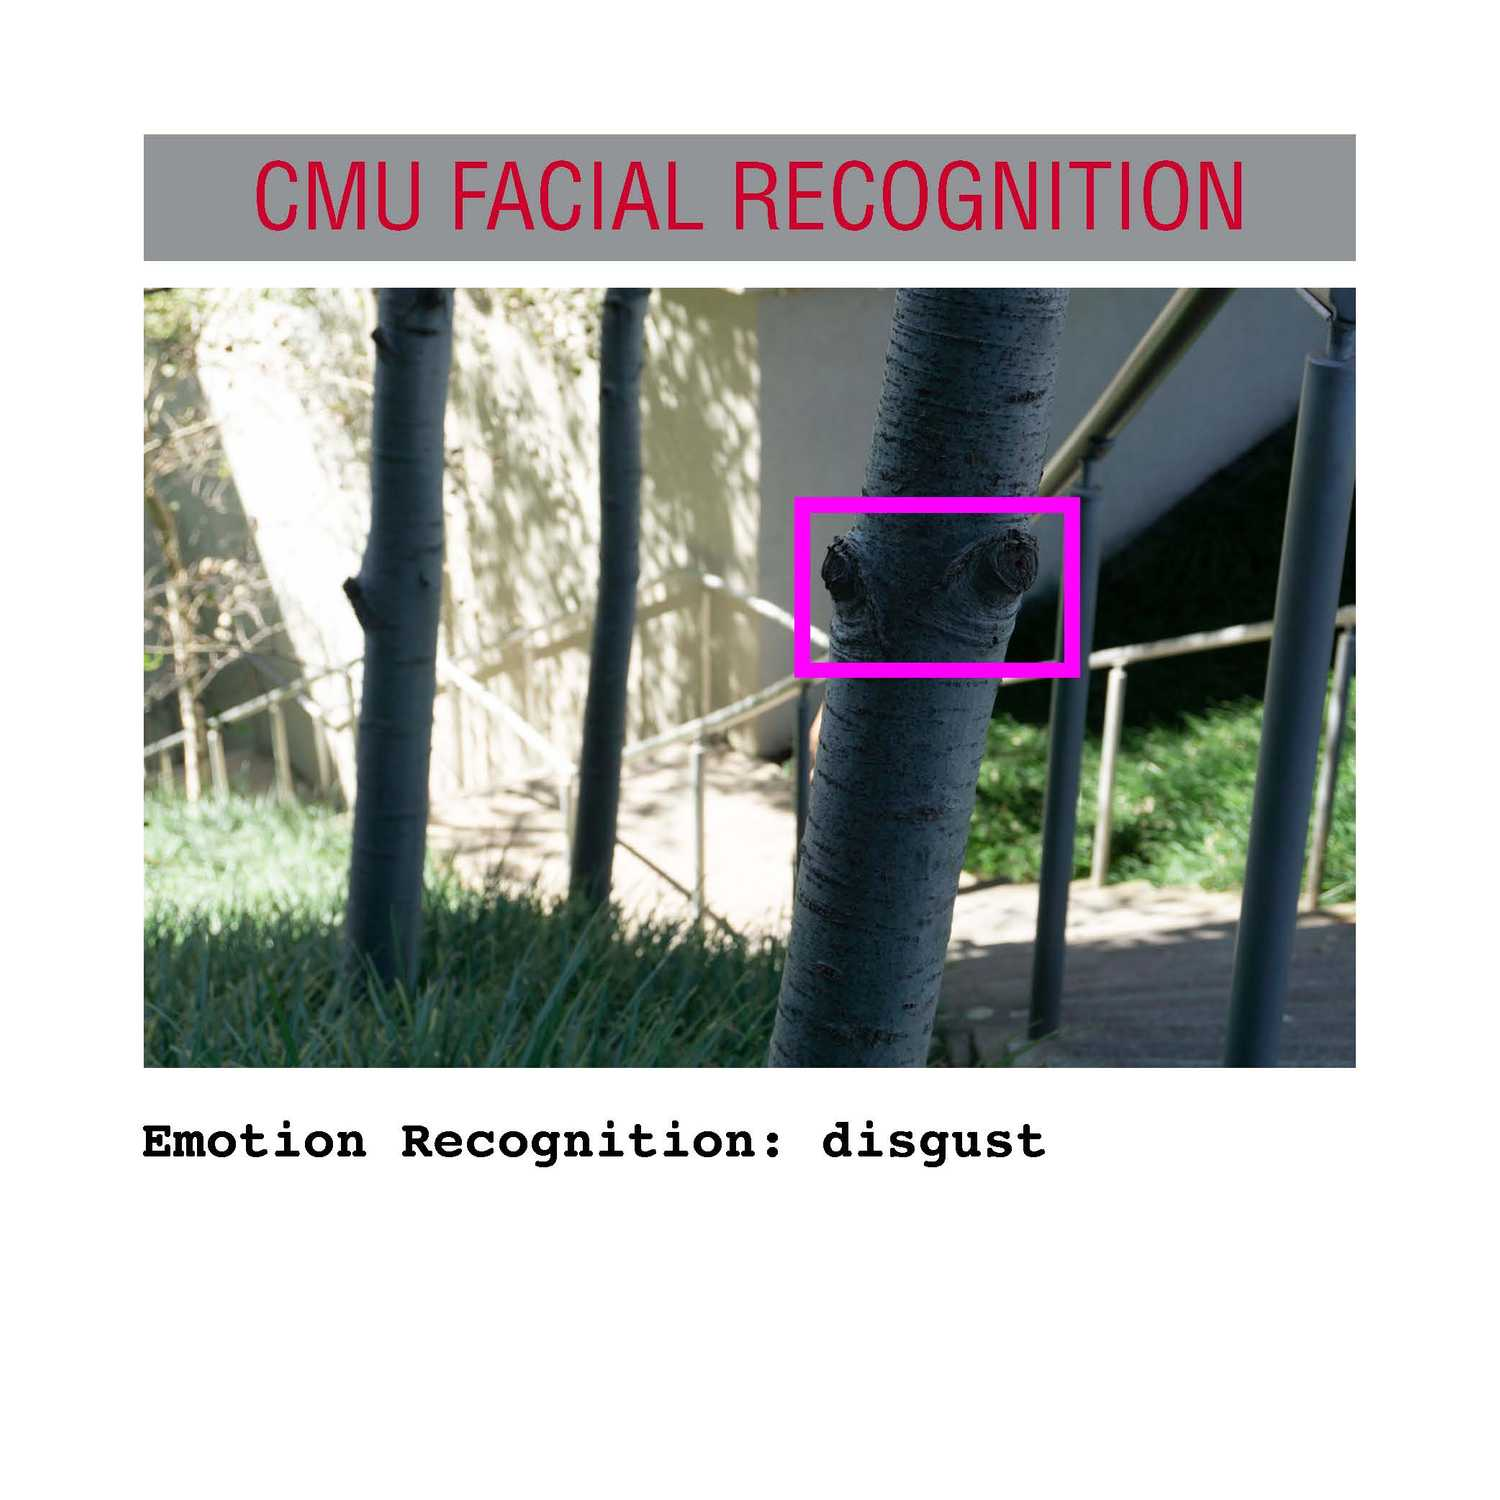 facial recognition Page 02